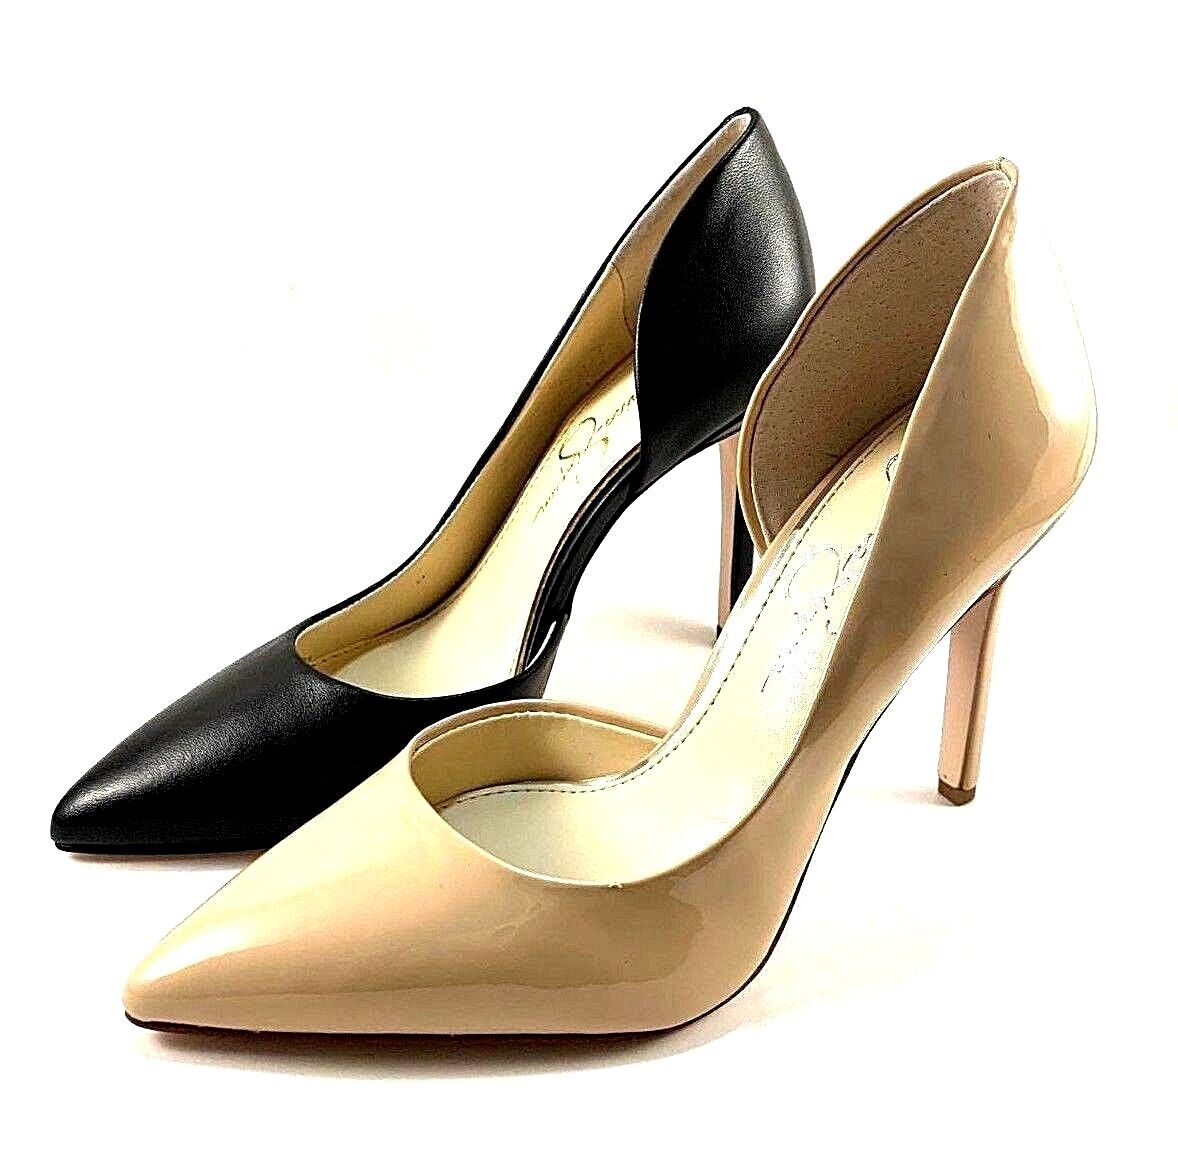 Jessica Simpson Paryn D'orsay Pointy Stiletto High Heel Pumps Choose Sz color